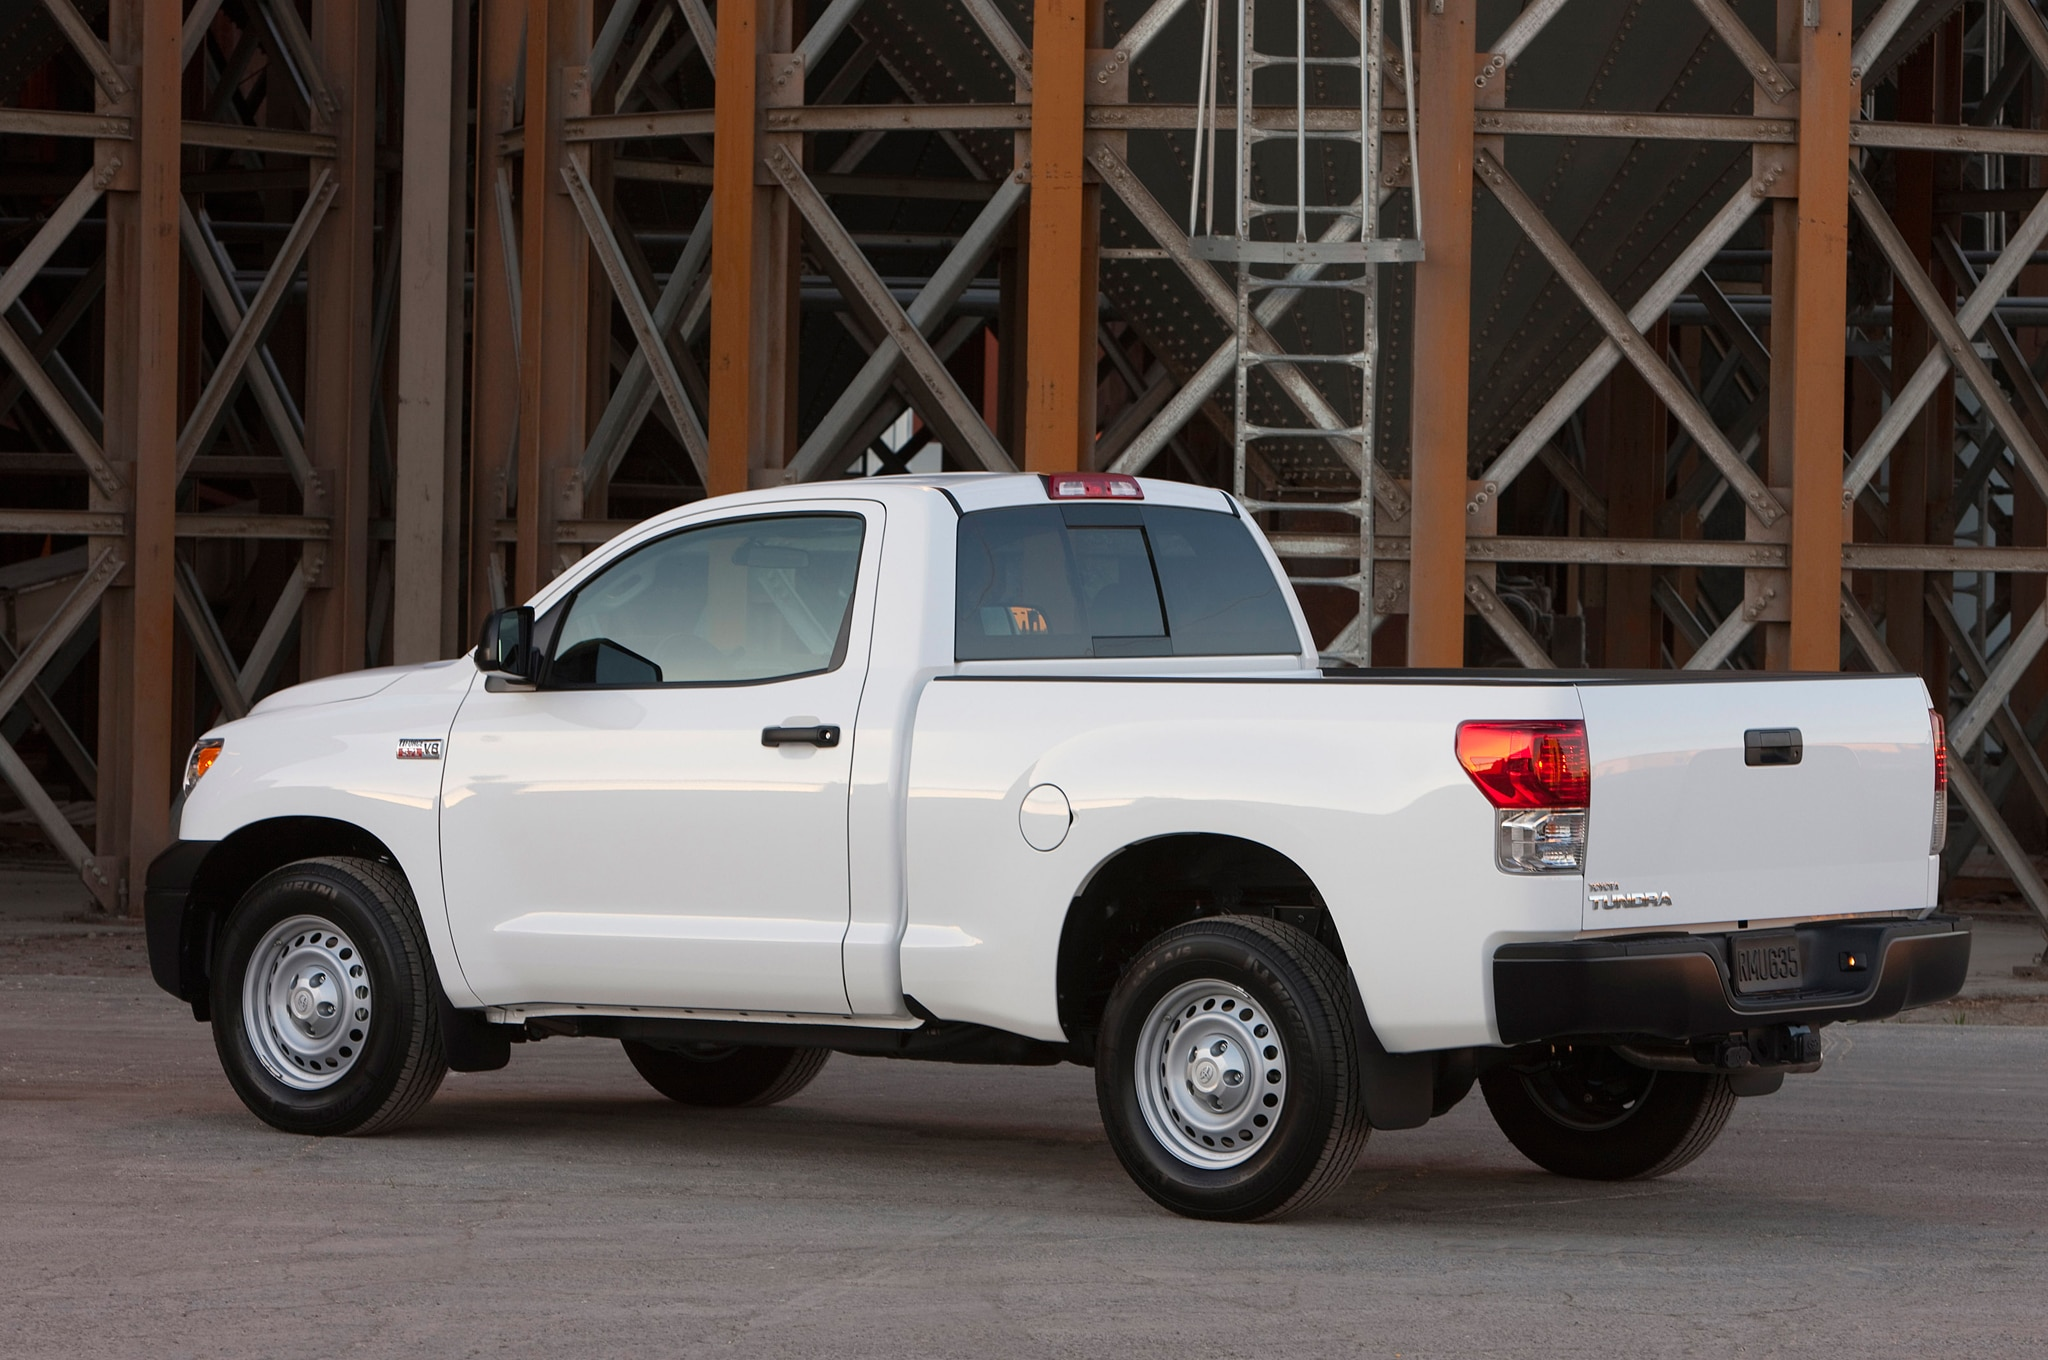 Toyota Tundra Made For Fishing Trd Tuned Fj Cruiser To HD Wallpapers Download free images and photos [musssic.tk]